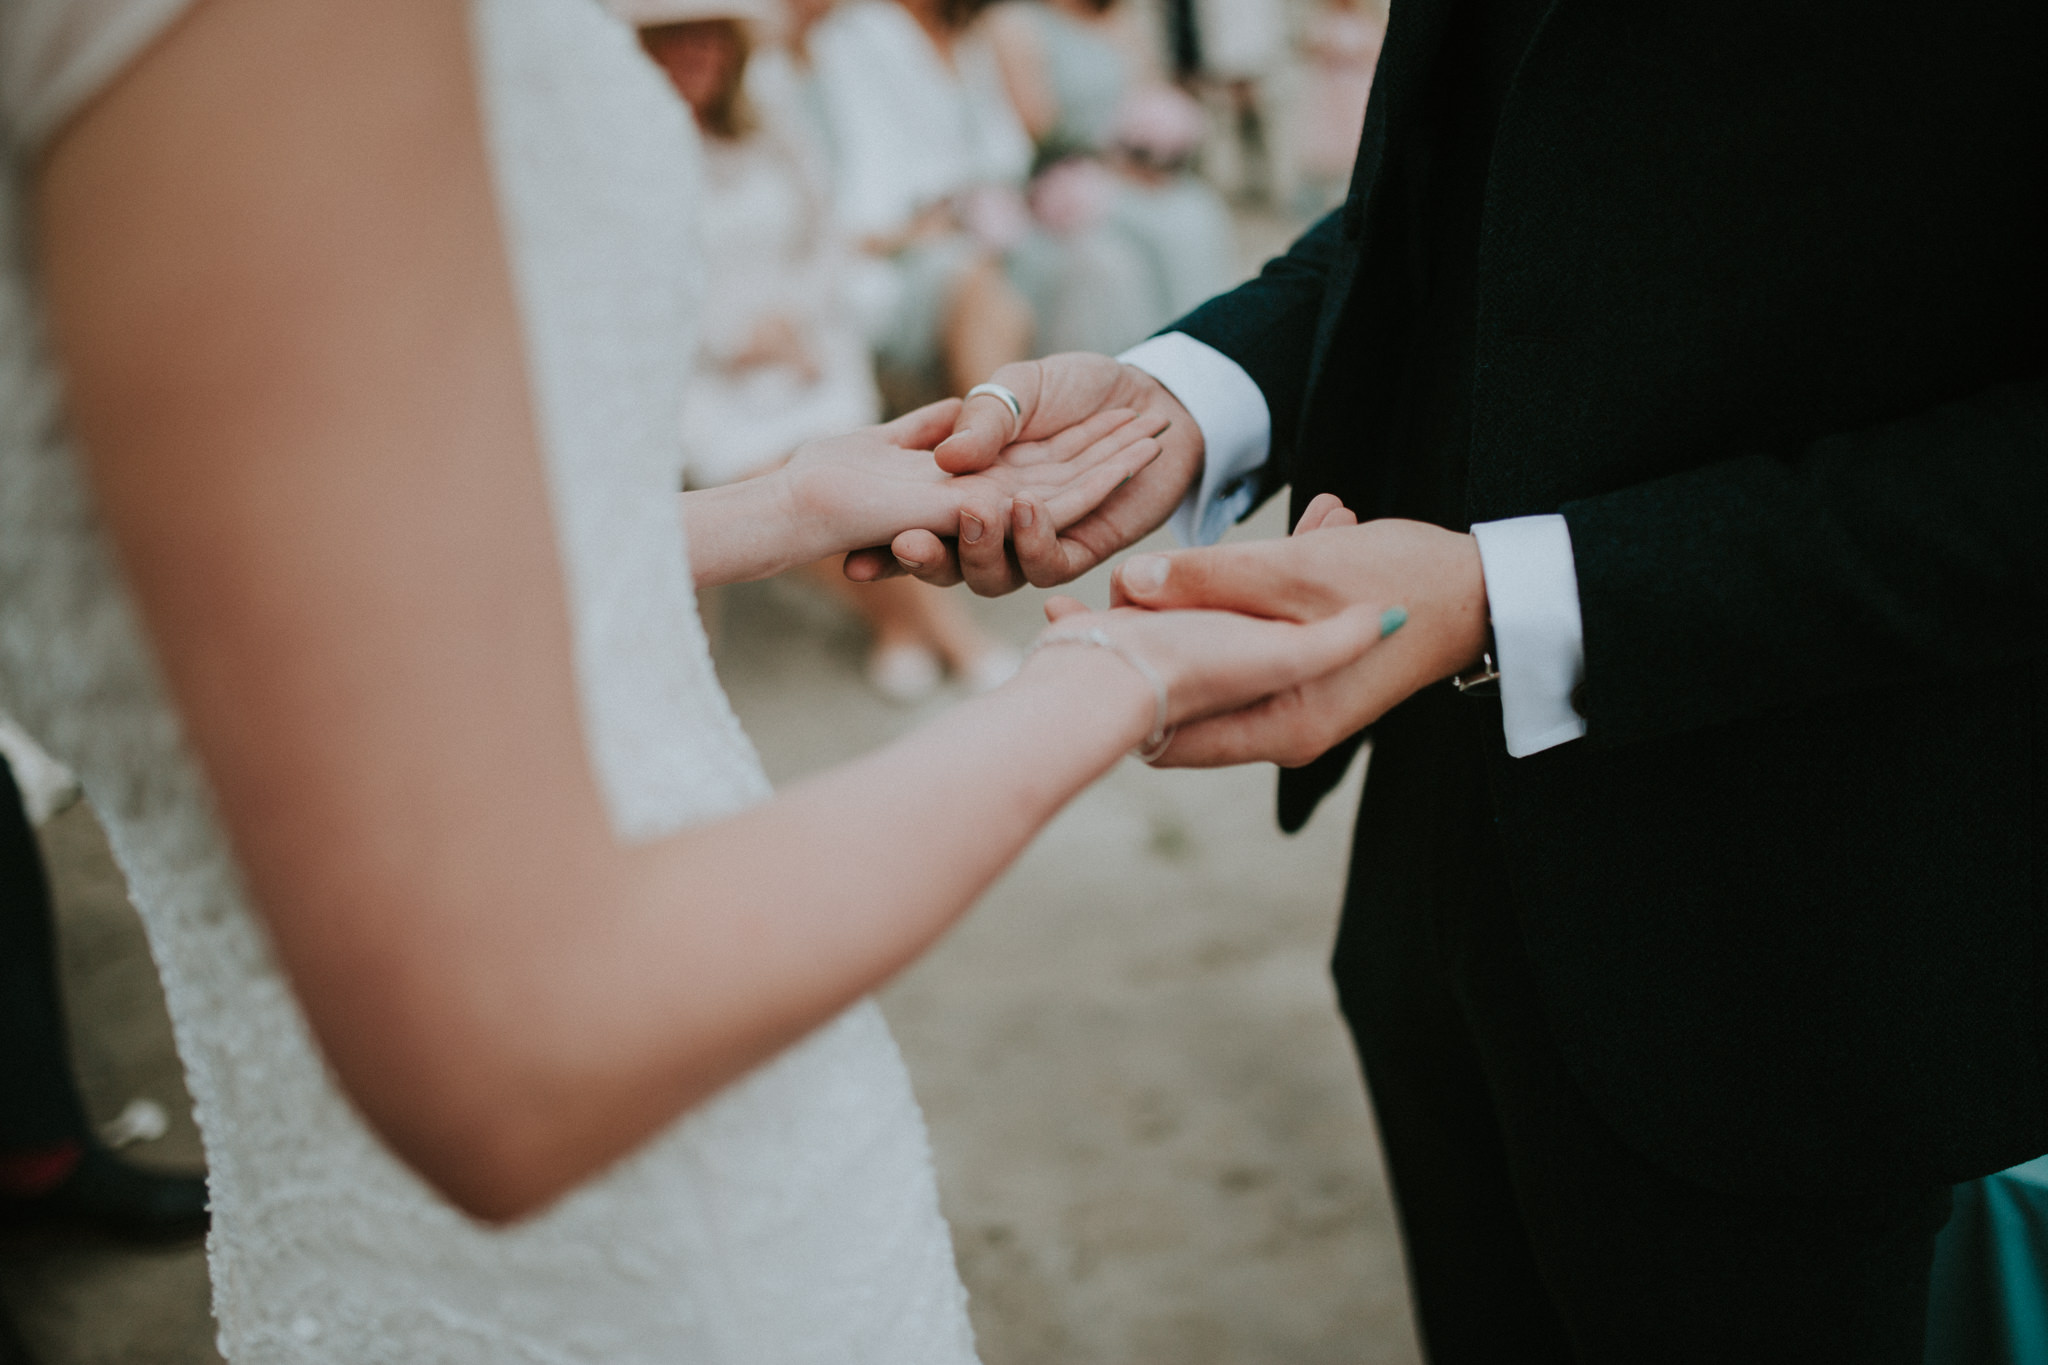 The groom is holding his brides hands.